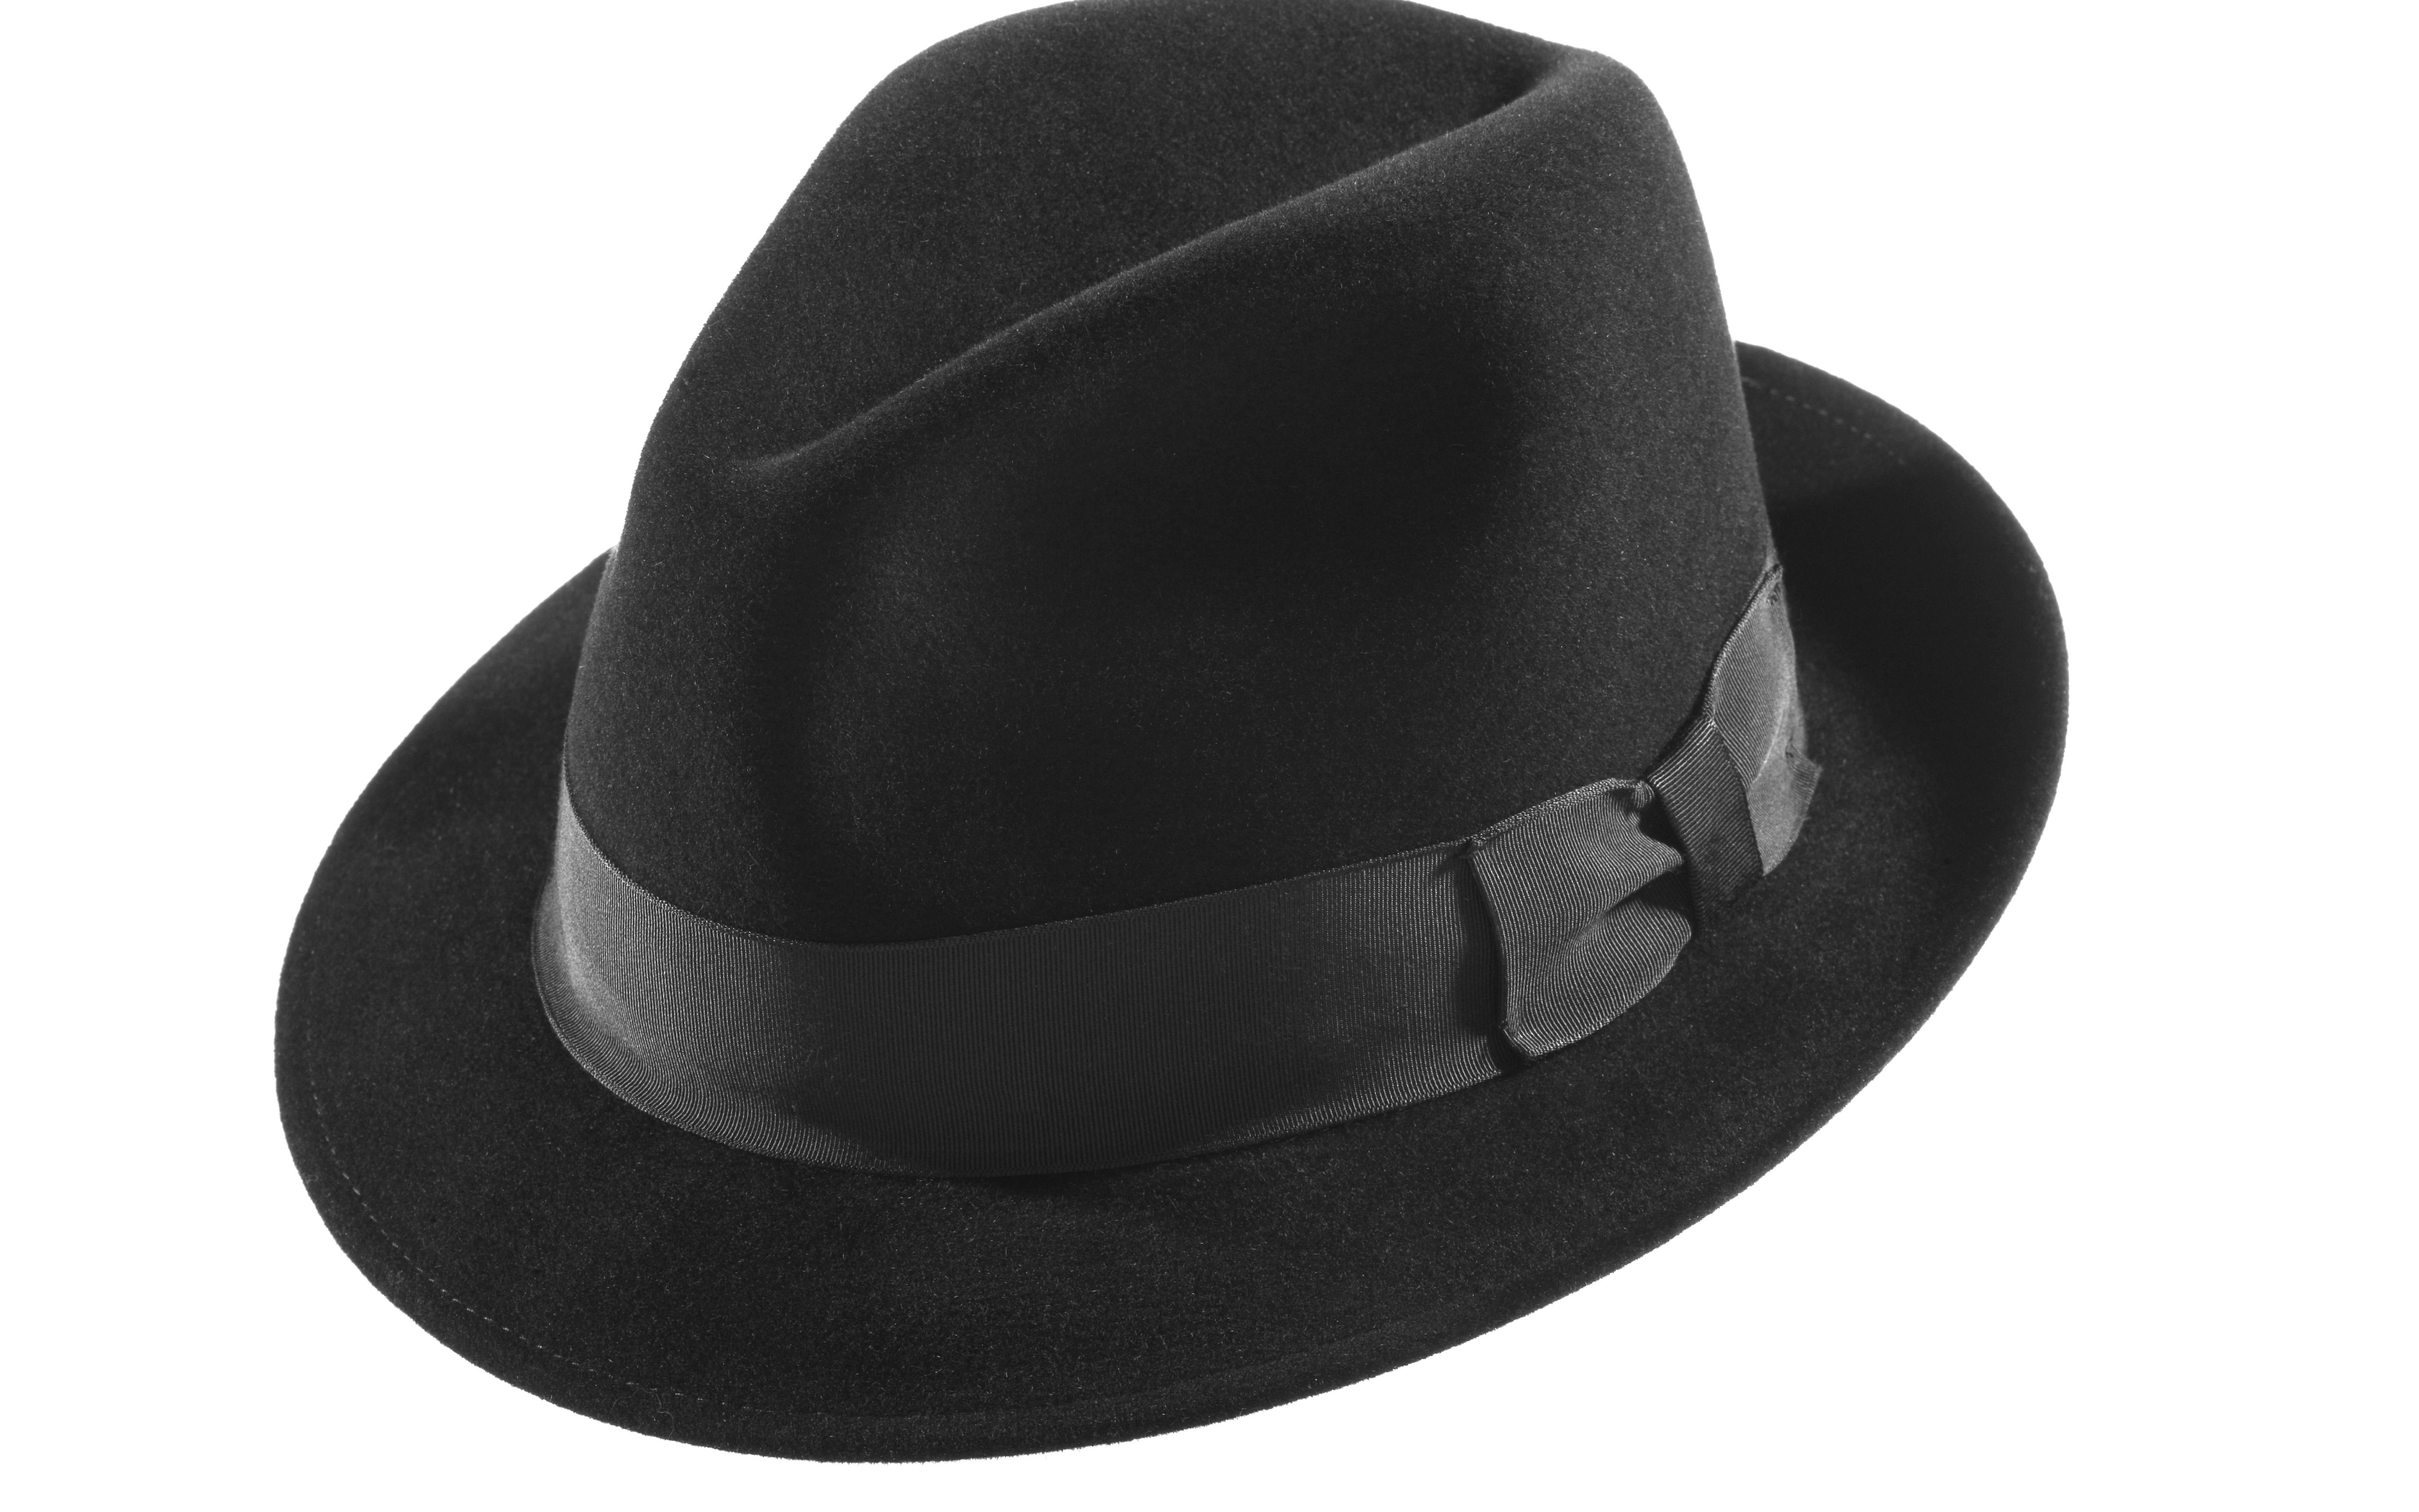 b50b247fd Hat - Classic fedora with traditional flattened bow | Fashion Finds ...